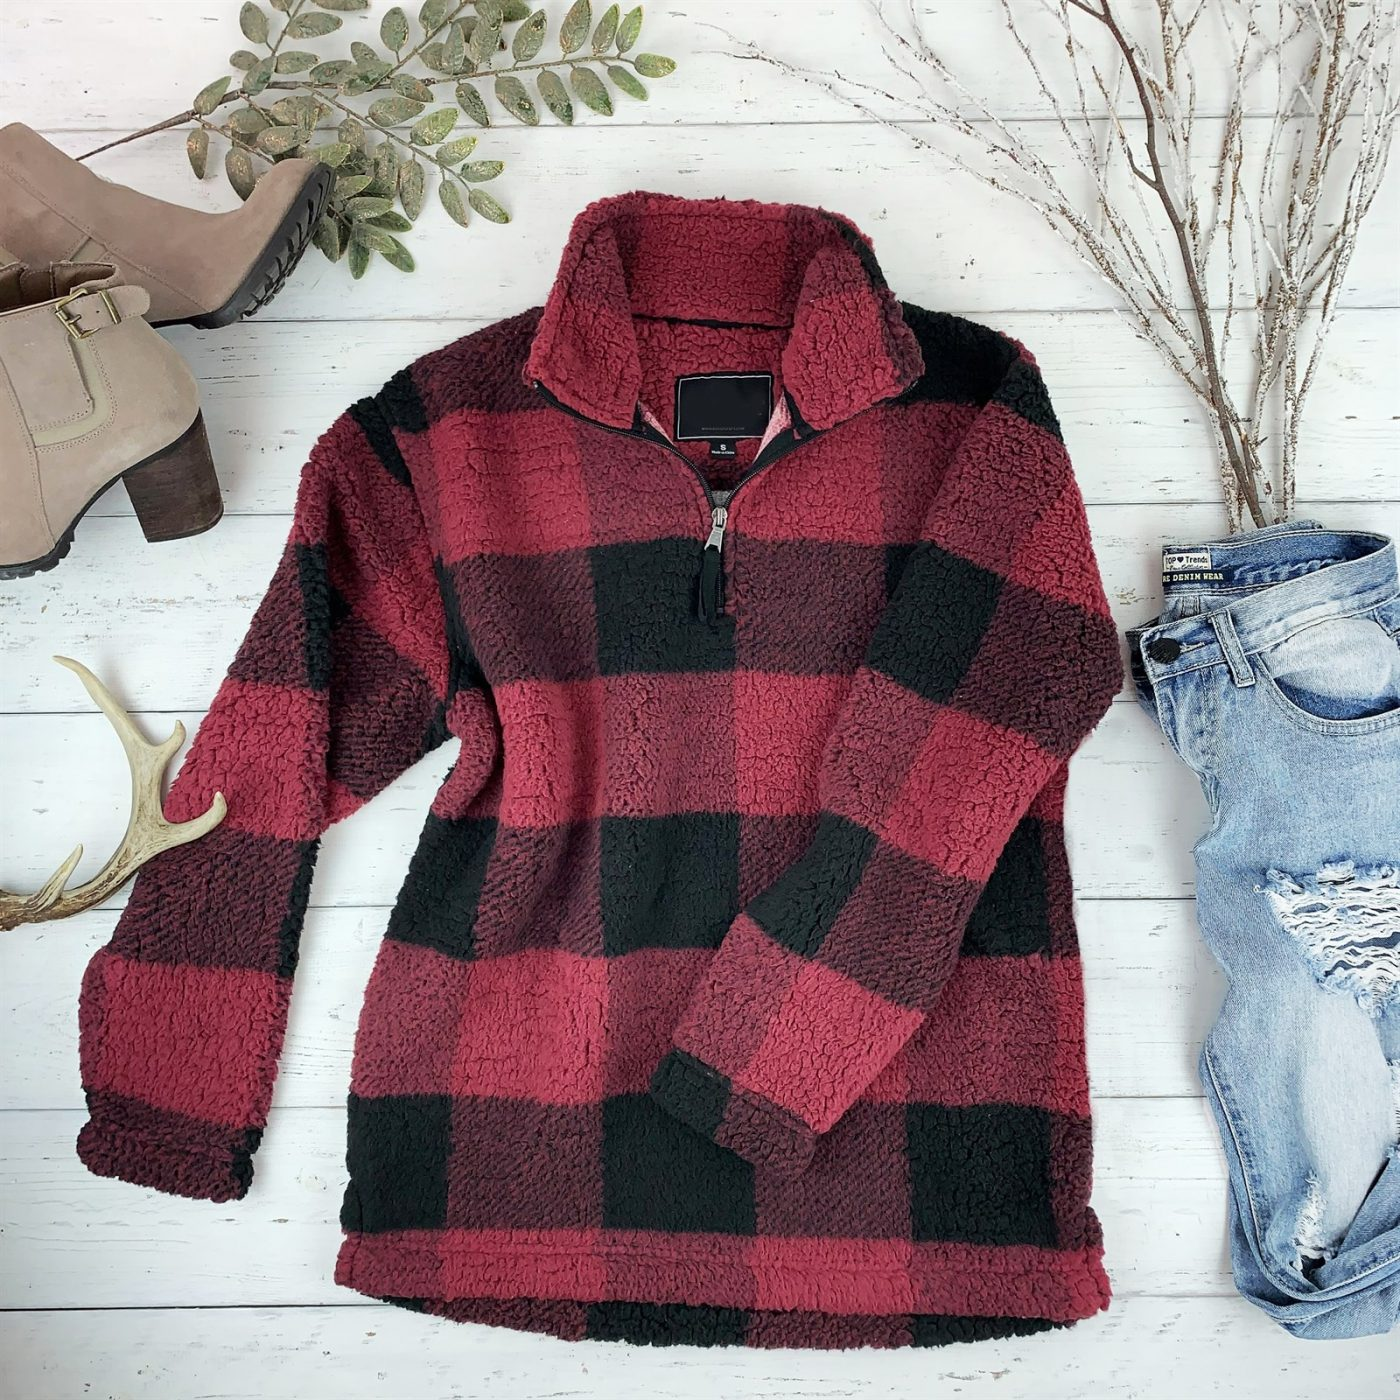 Was $65.00 - Now $39.99 - Buffalo Plaid Sherpa 1/4 Zip Pullover | Free Shipping (10/12 to 10/14)